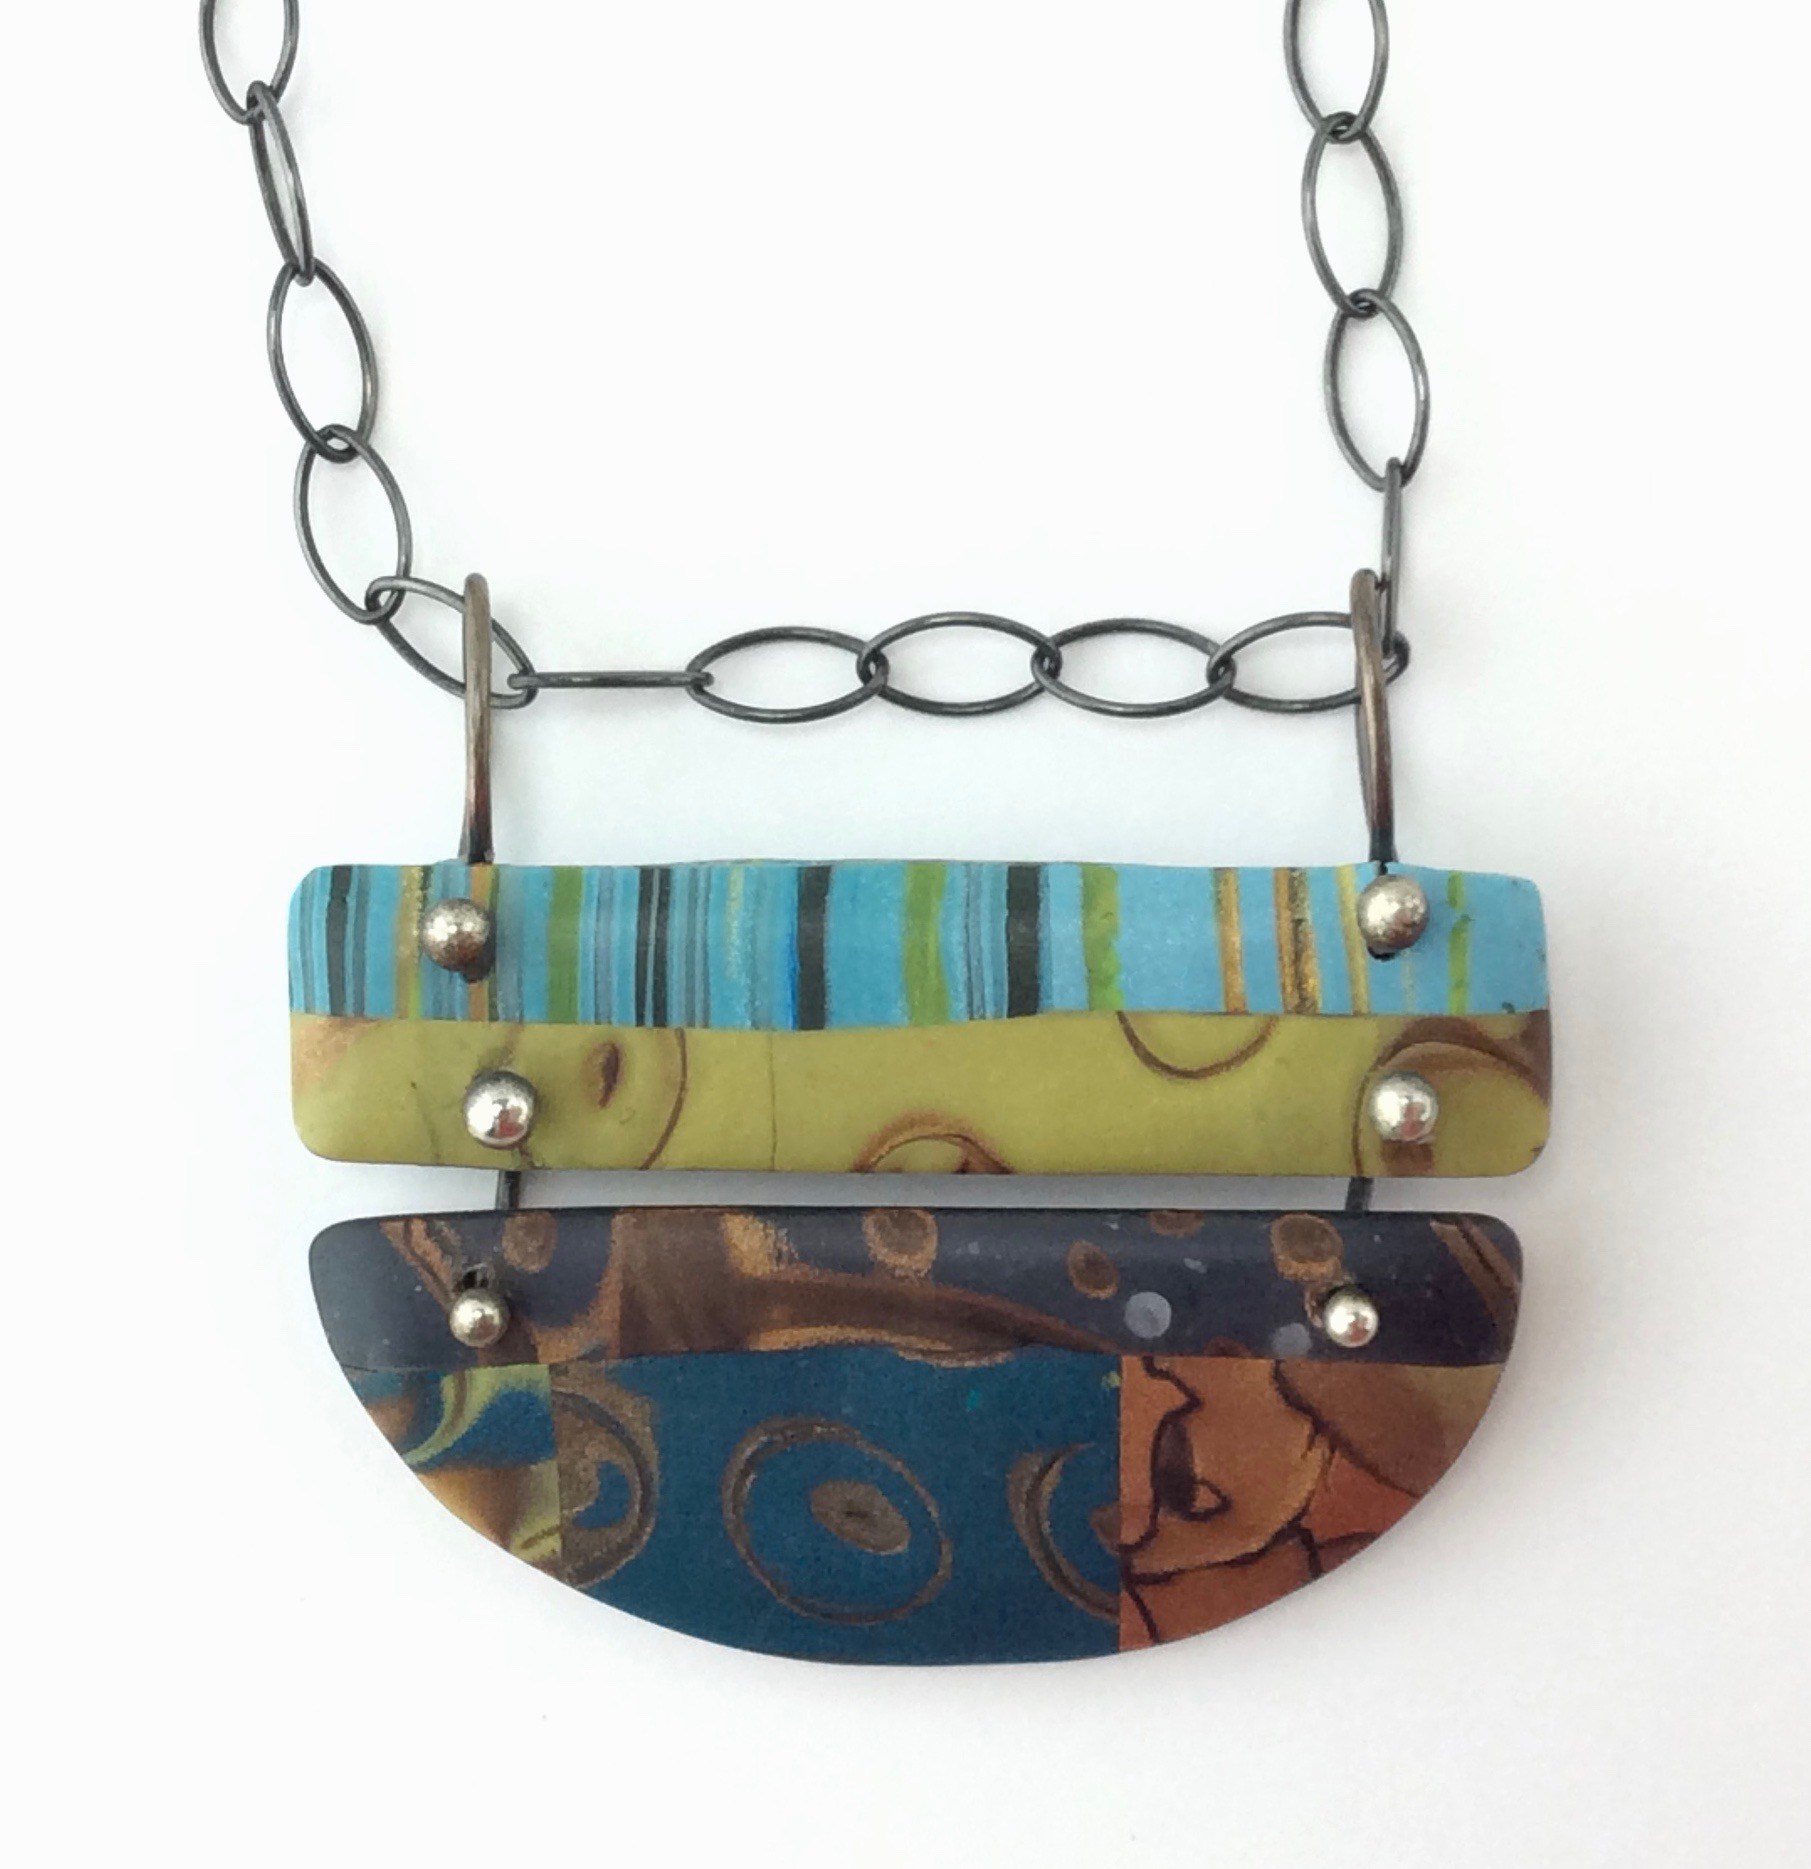 """Dancing Pendant  polymer clay millefiori marquetry, argentium silver, patinated sterling silver chain with fabricated sterling silver hook  30"""" L x 1.5""""W x 1"""" H"""